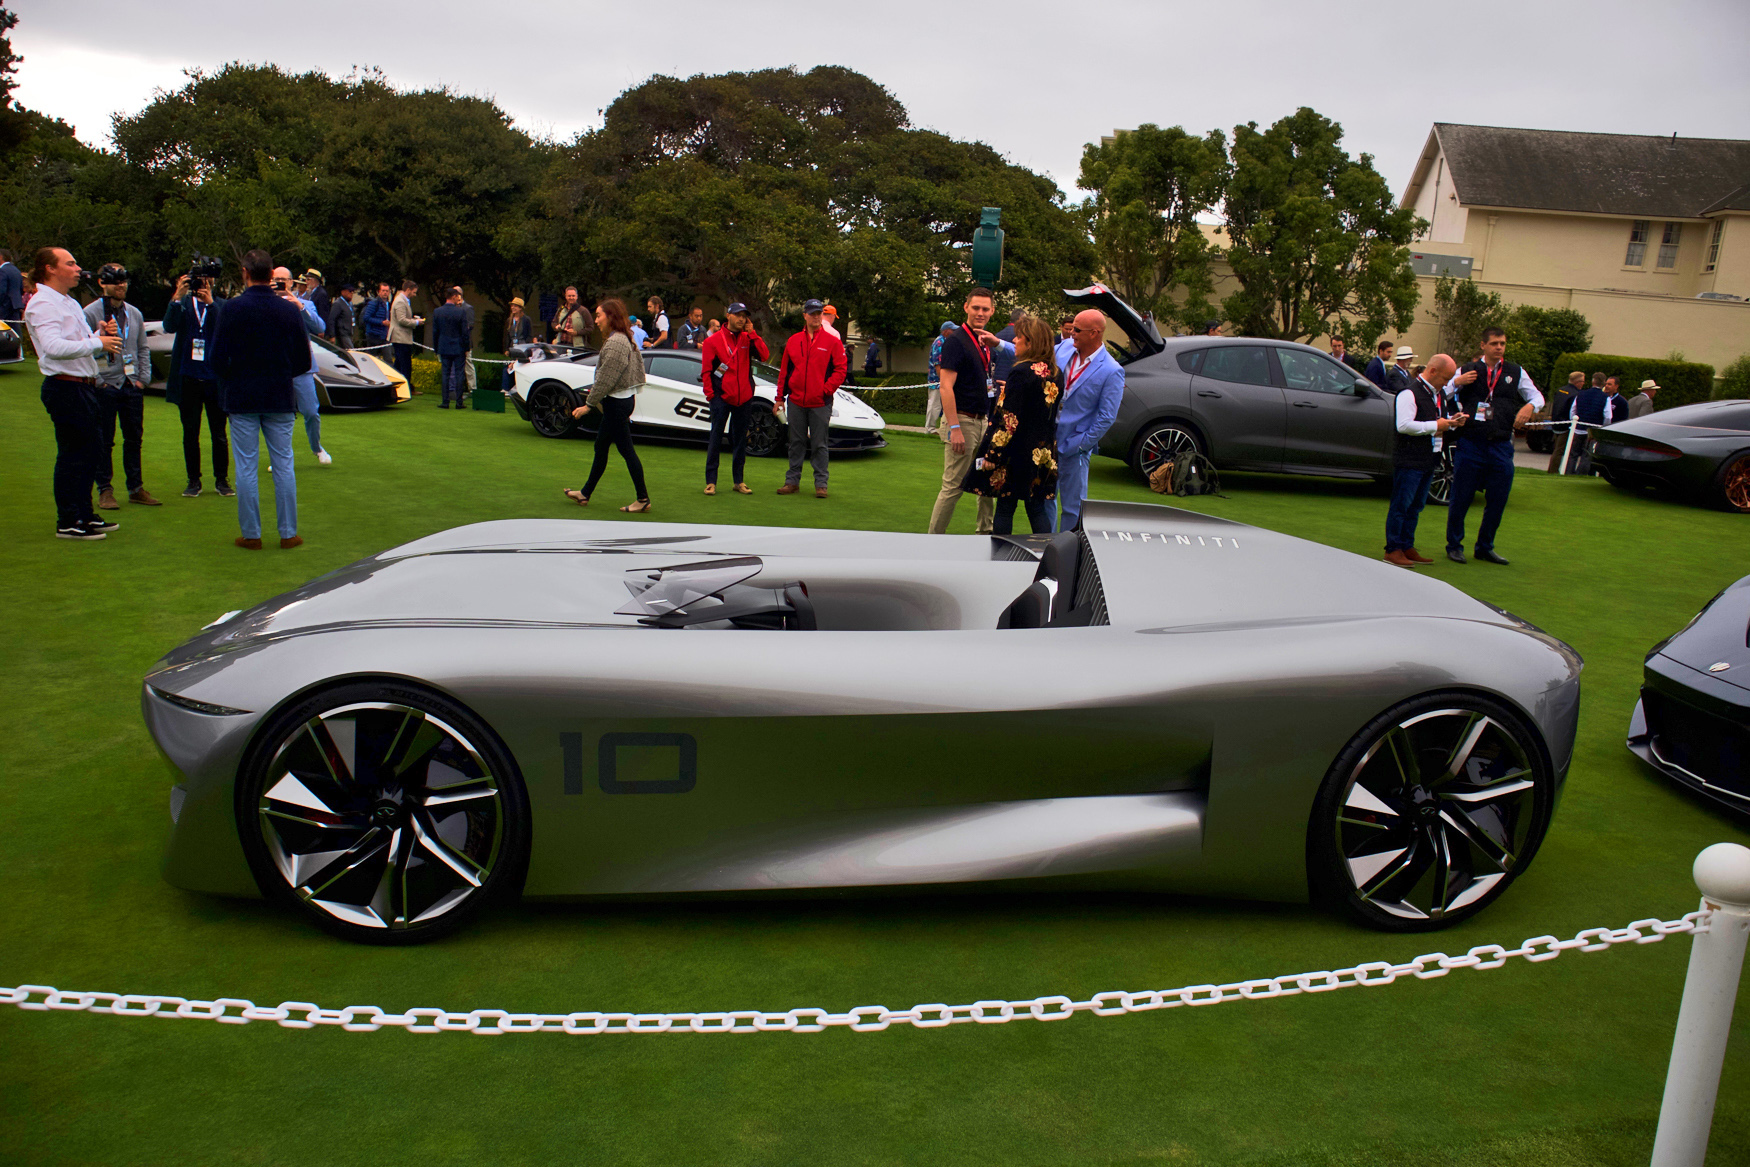 Pebble Beach and Quail with Post Oak Motor Cars